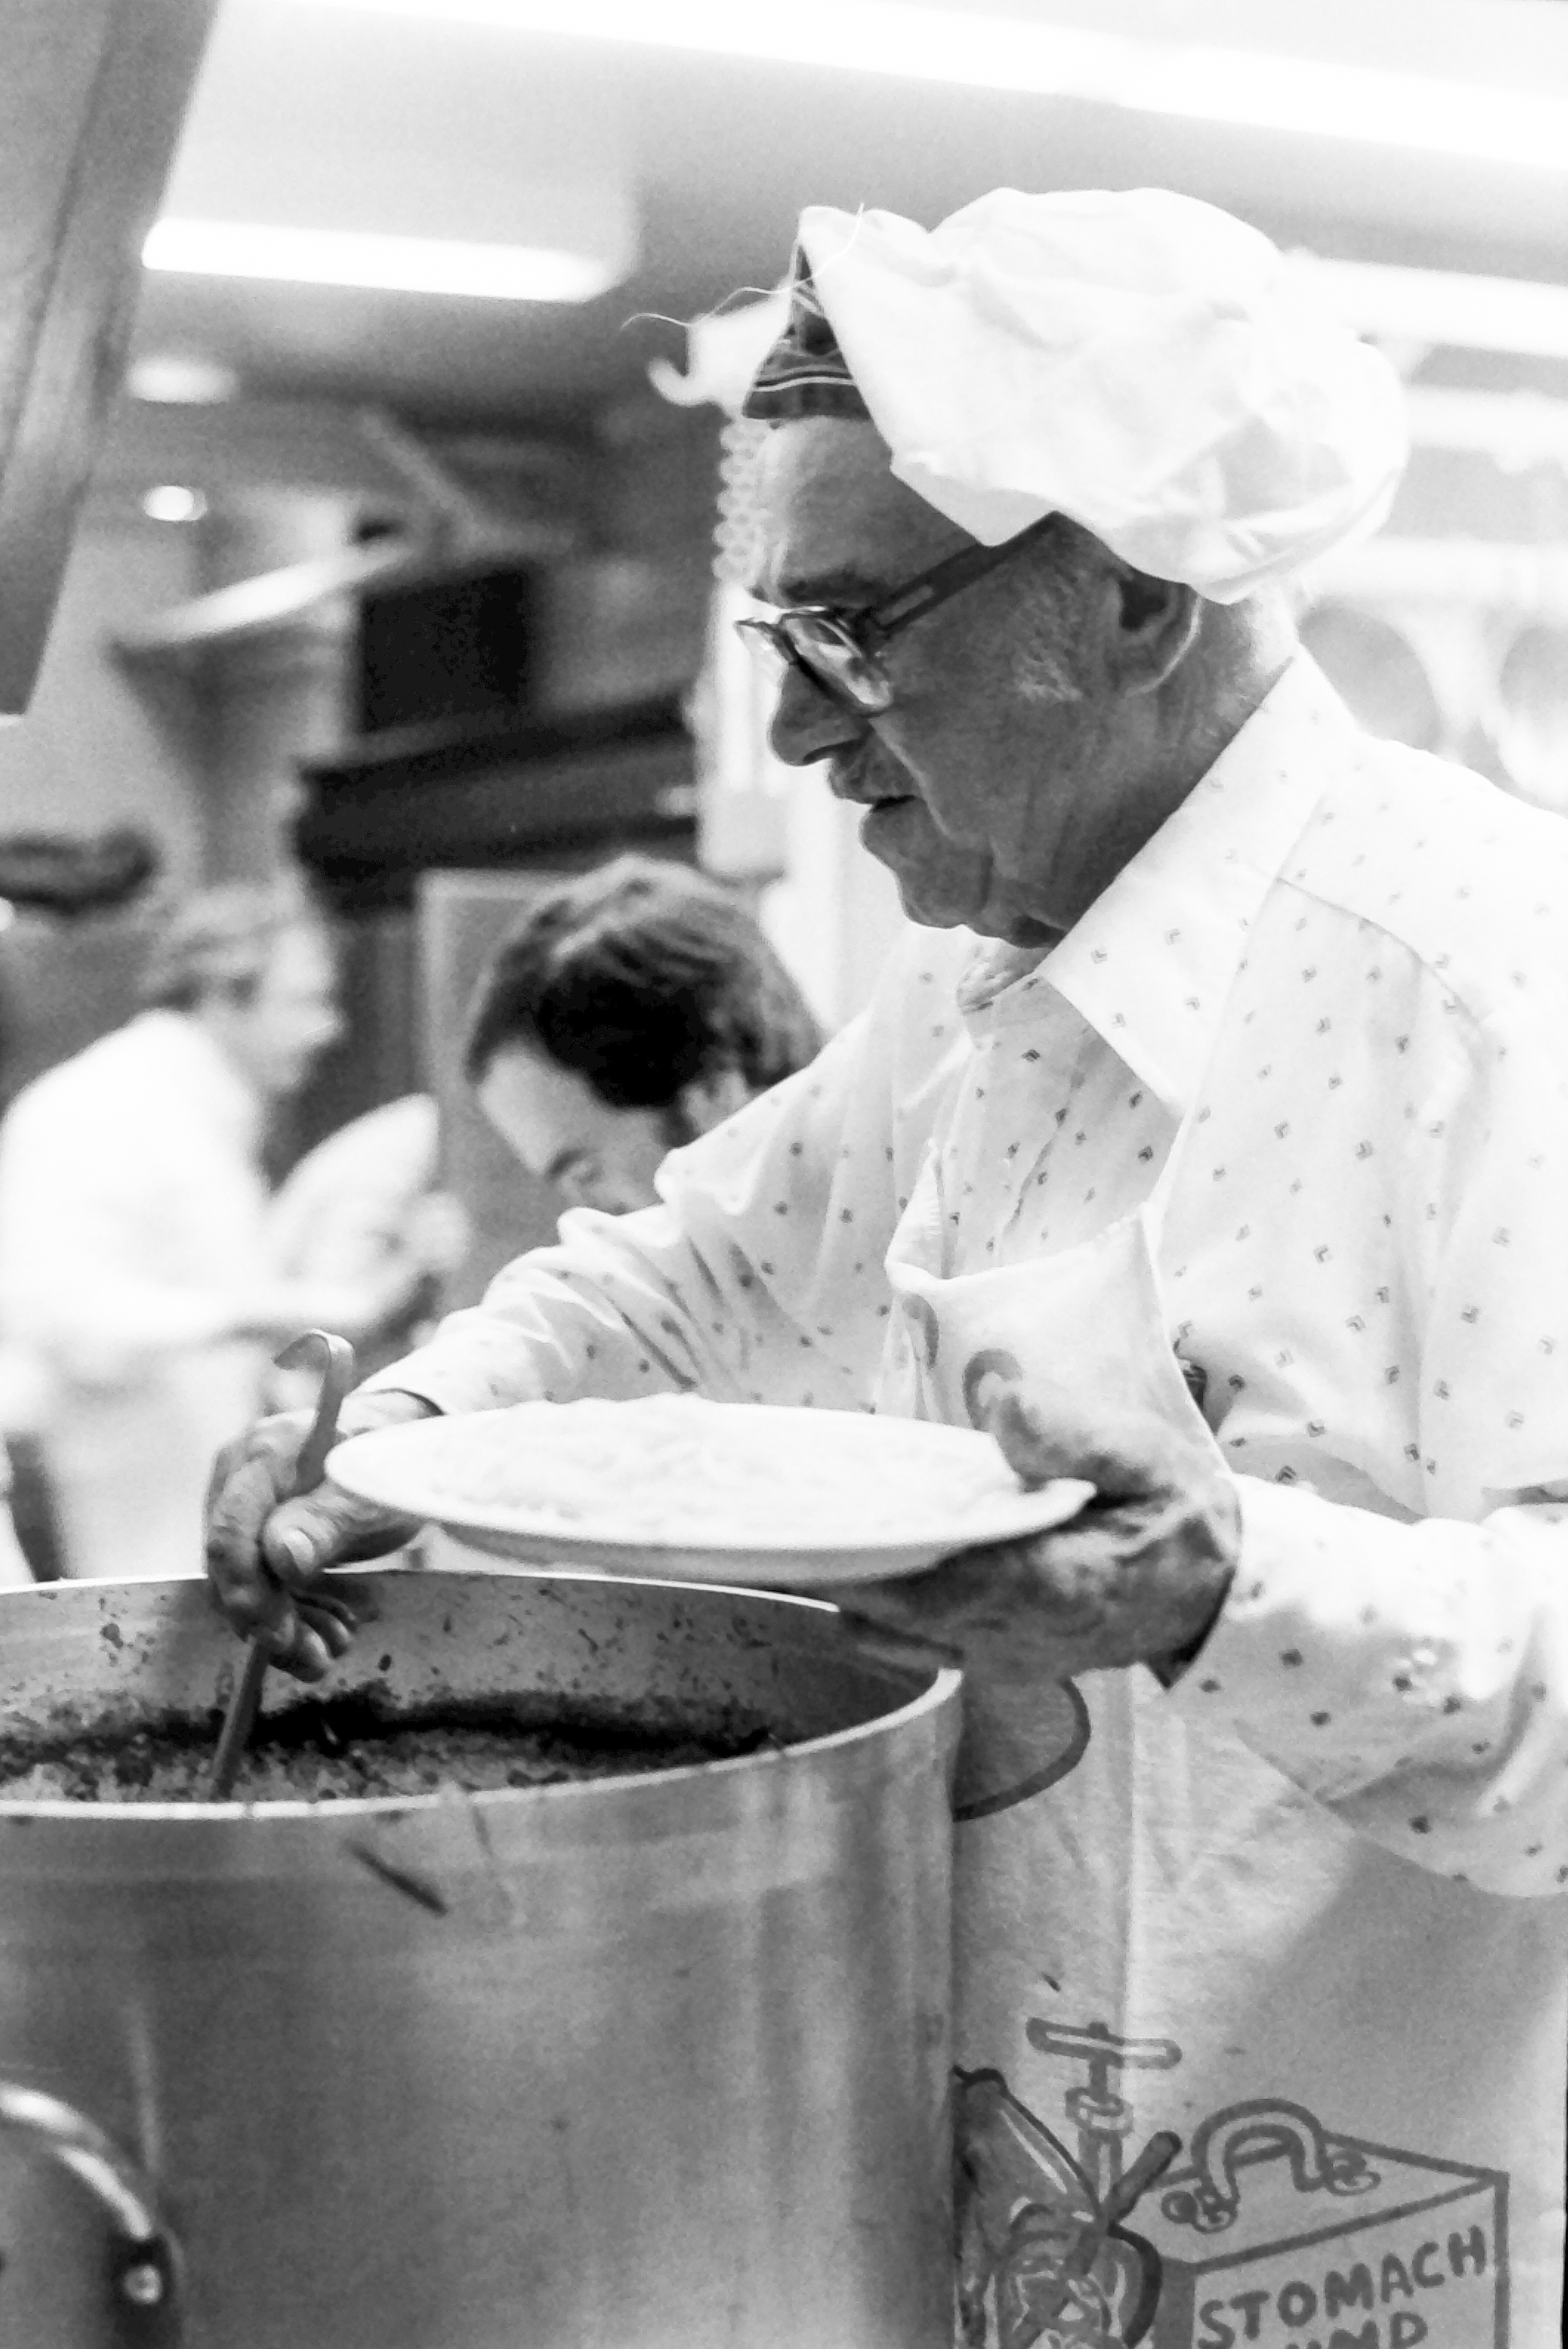 """This kind of fundraising supper is held several times every year in our area towns.This particular meal was at Sharon Center School, to raise funds for the Sharon Day Care Centet.The gentleman in the patterned shirt and entertaining apron is described in the Feb. 14, 1985, issue as """"Master spaghetti cook Fred Amerighi."""" If anyone recognizes someother volunteer chefs and kitchen workers, send a note to <a href=""""mailto:cynthiah@lakevillejournal.com"""">cynthiah@lakevillejournal.com</a>.<em><strong>Photo by Brigitte Ruthman</strong></em>"""